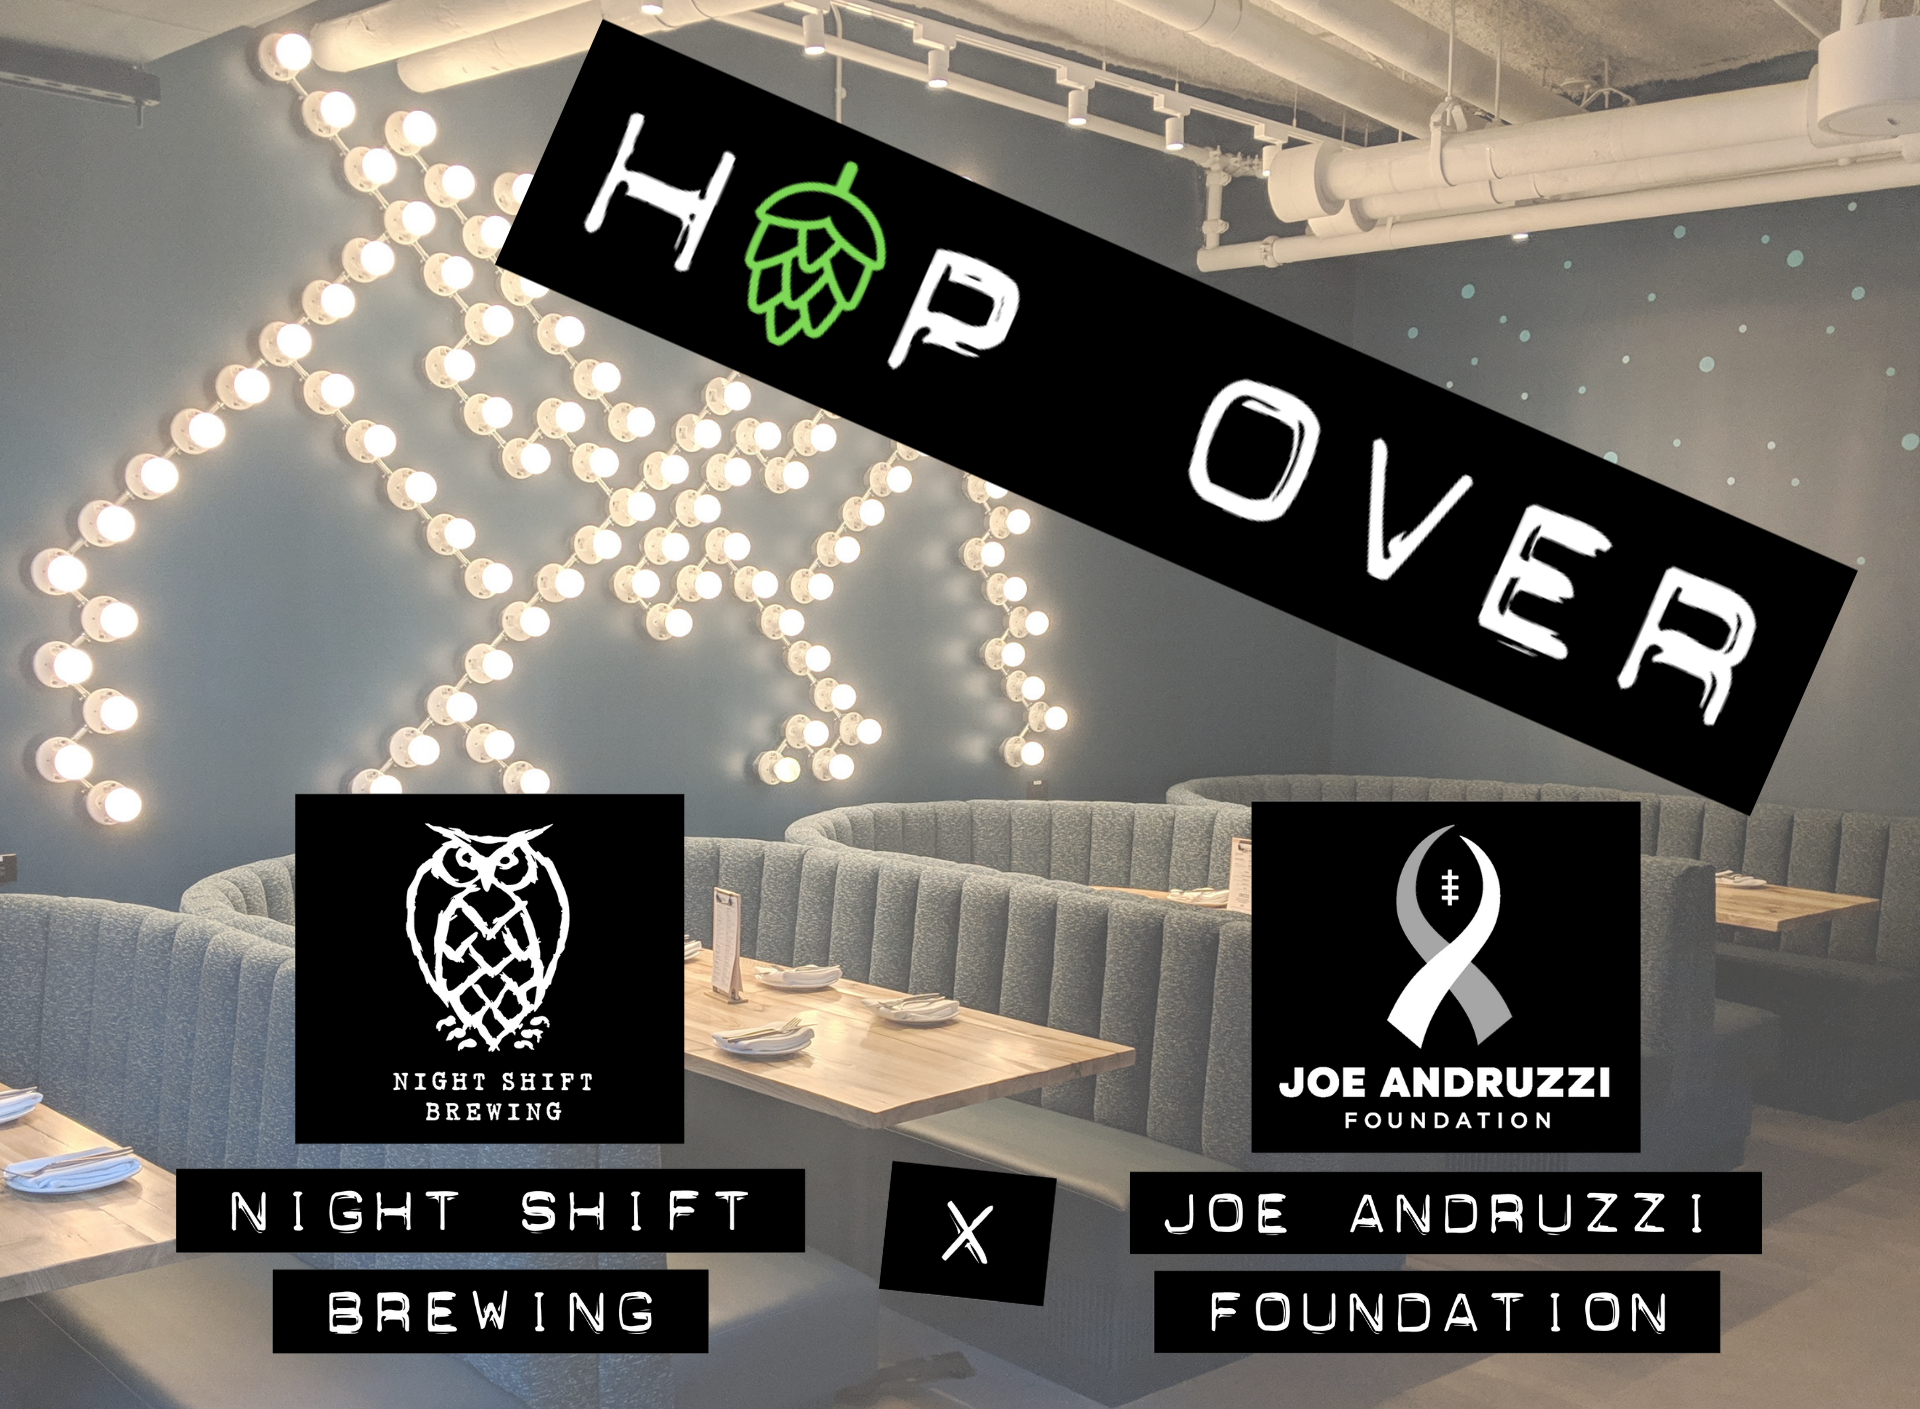 JAF Hop Over Night Shift Brewing Event Page Header Image